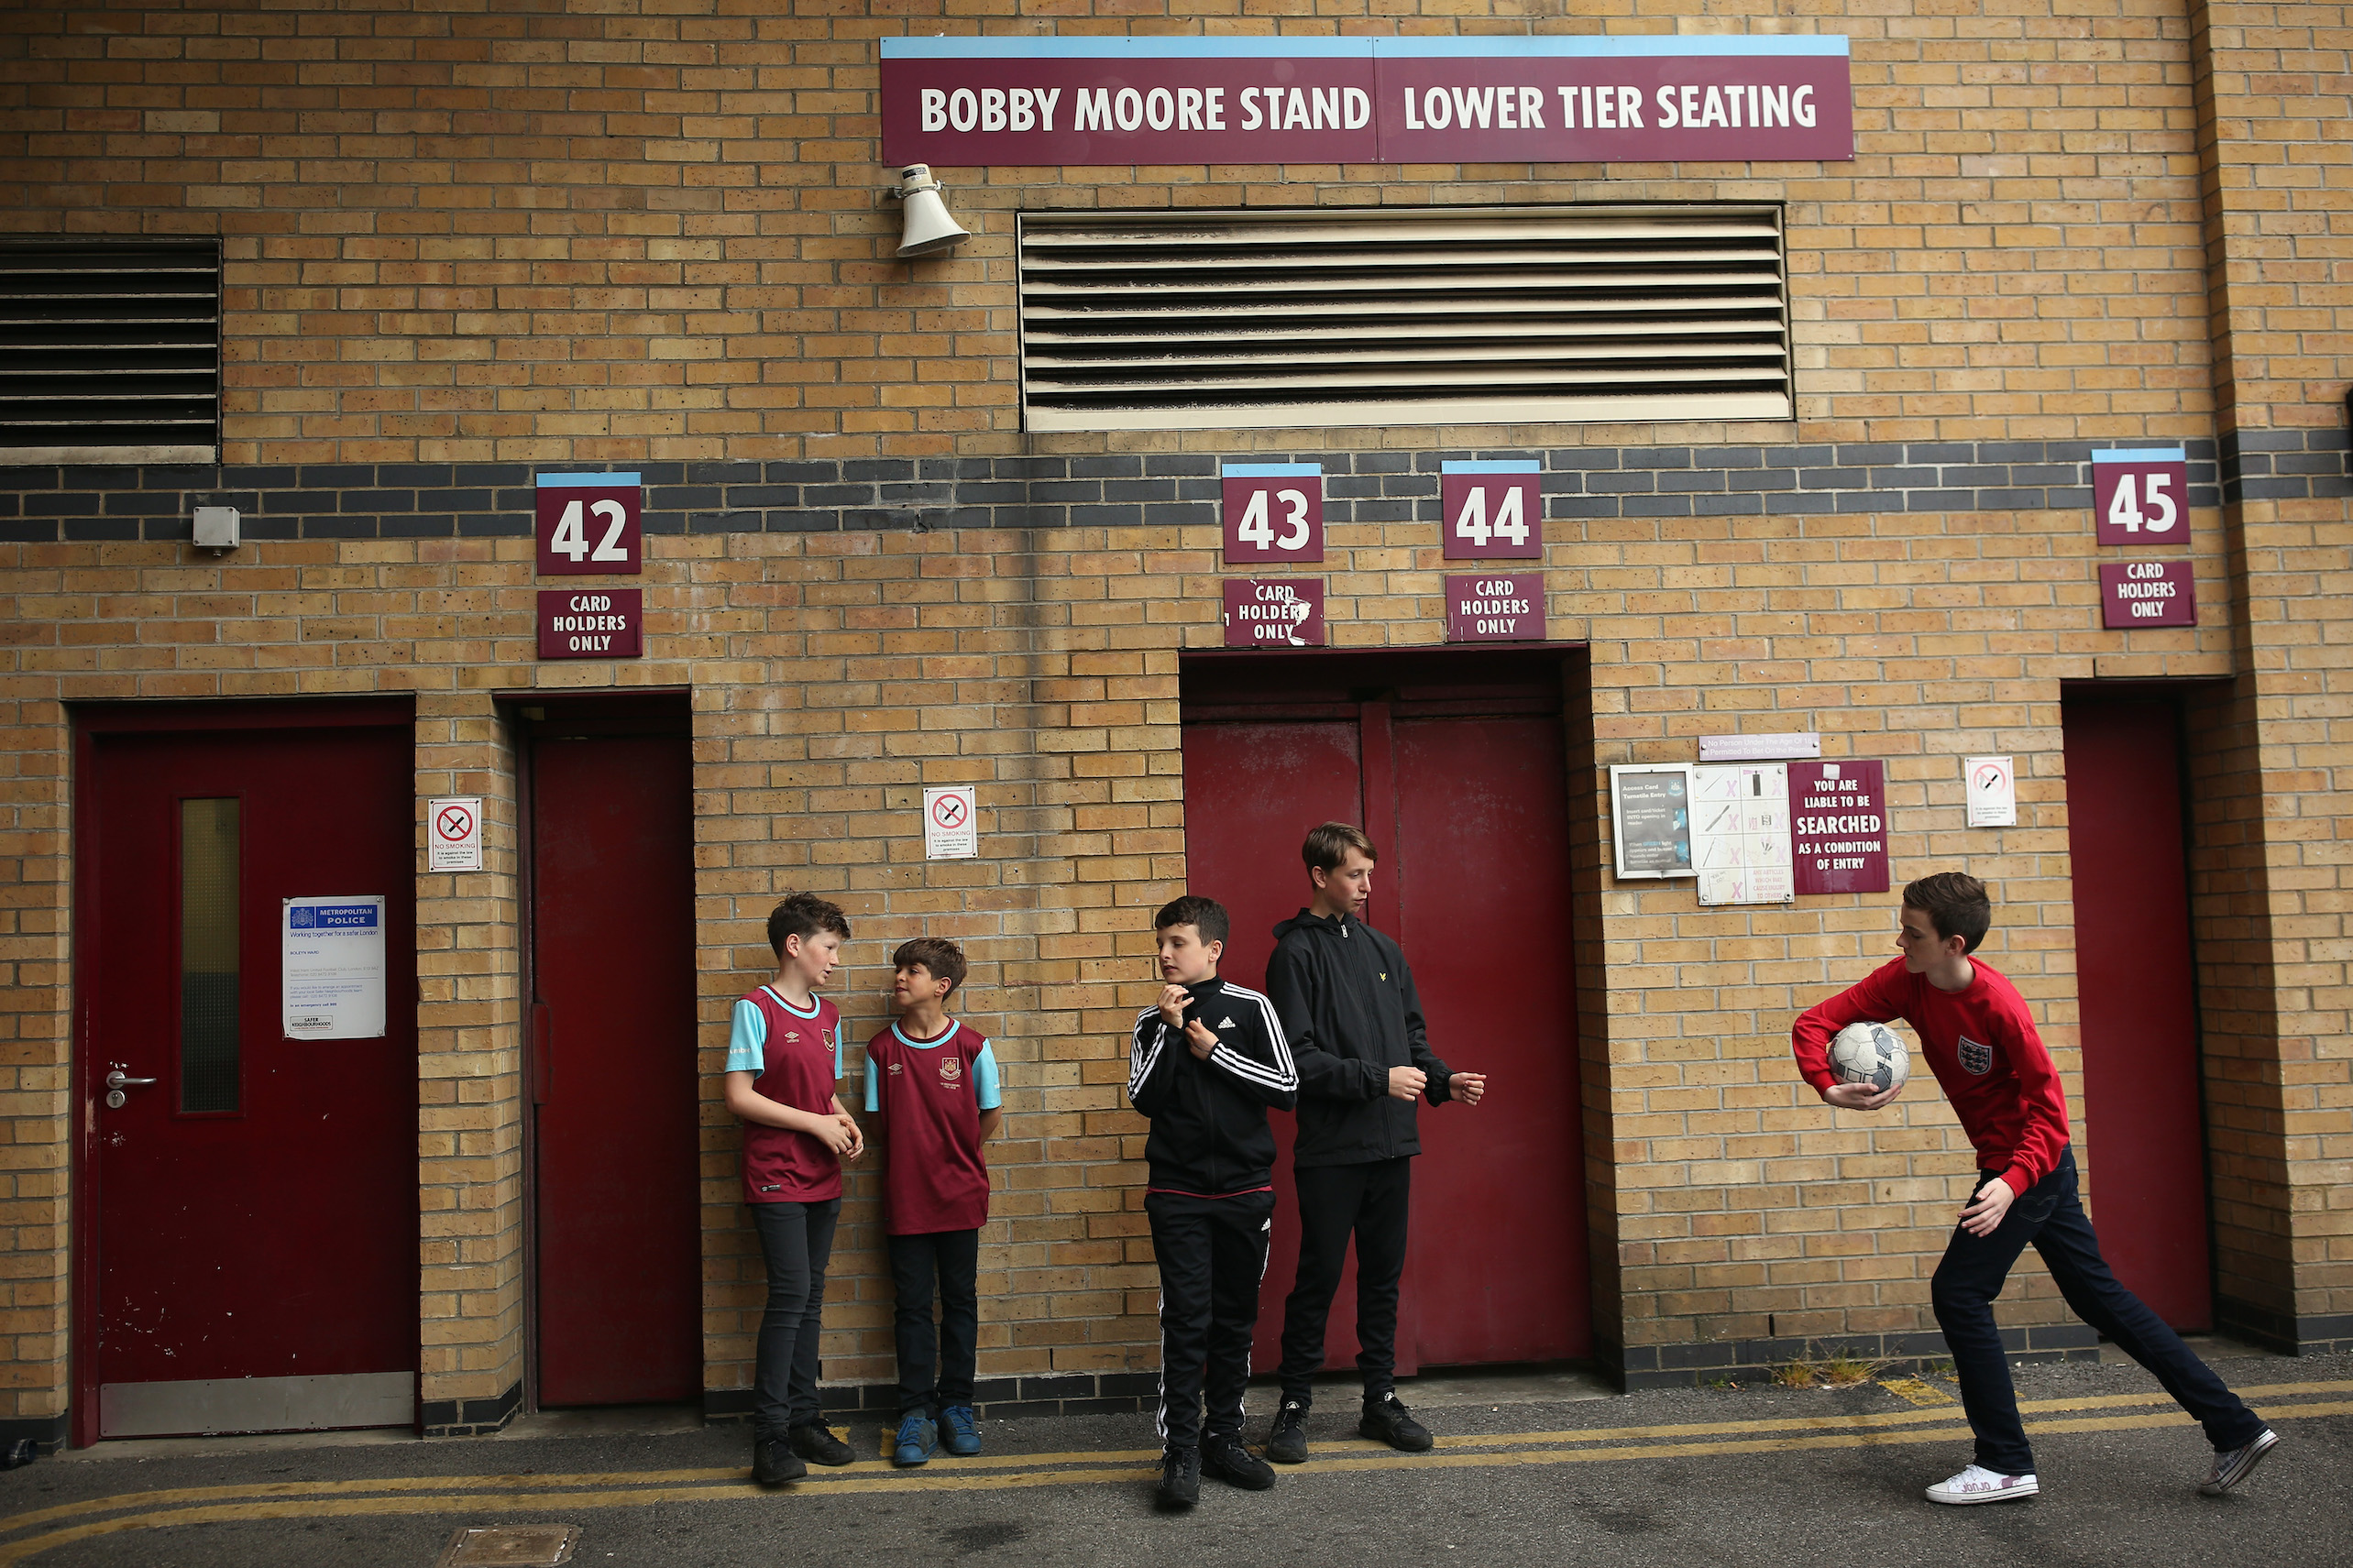 West Ham Play Their Last Ever Game At The Boleyn Ground